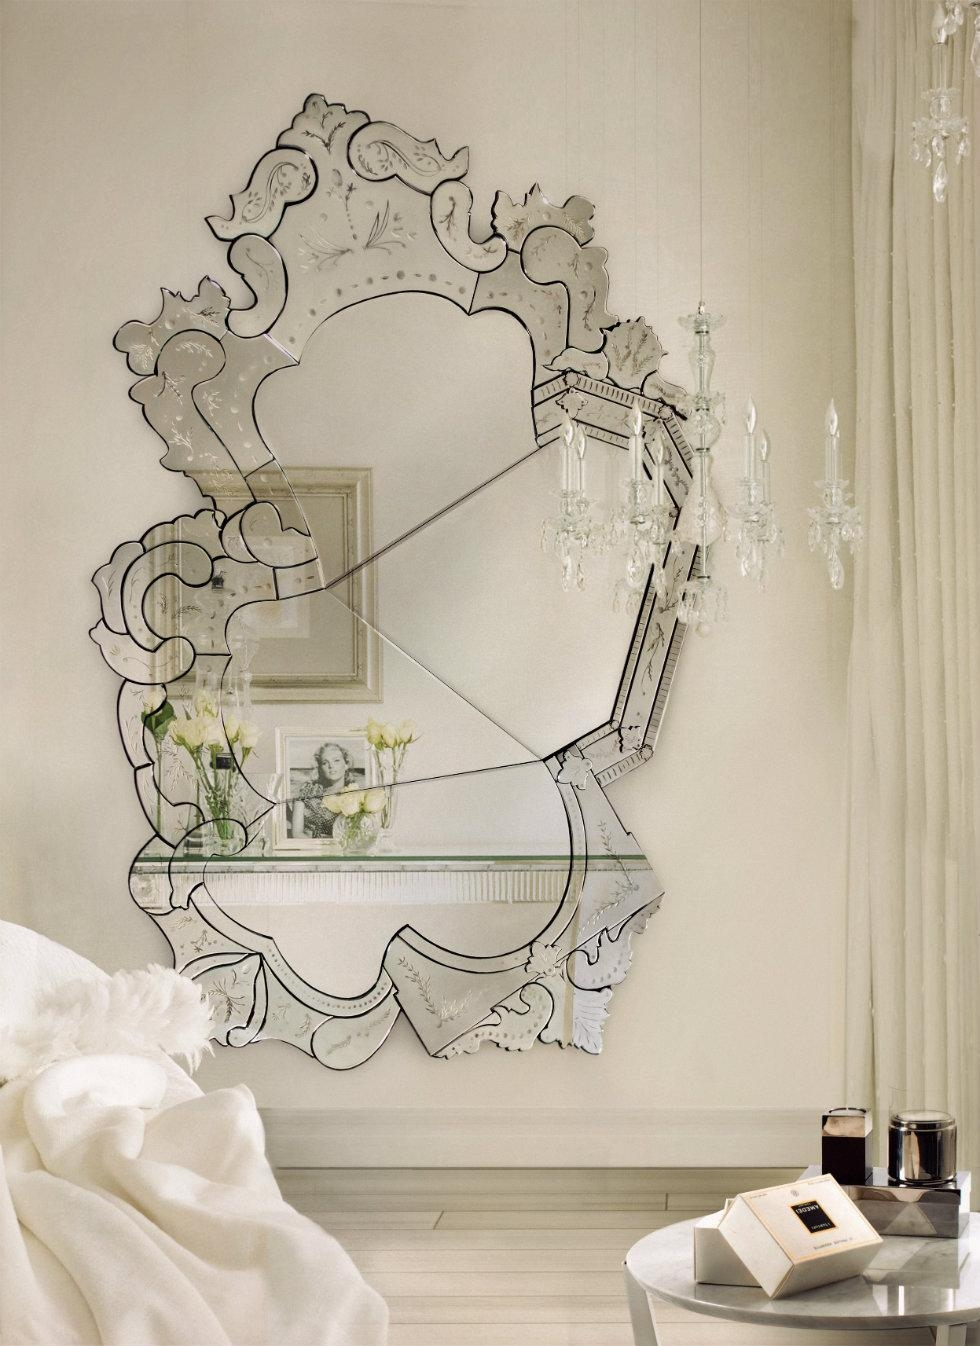 Interior: Framed Mirrors For Bathroom | Venetian Mirror | Leaning With Regard To Extra Large Venetian Mirror (Image 8 of 20)